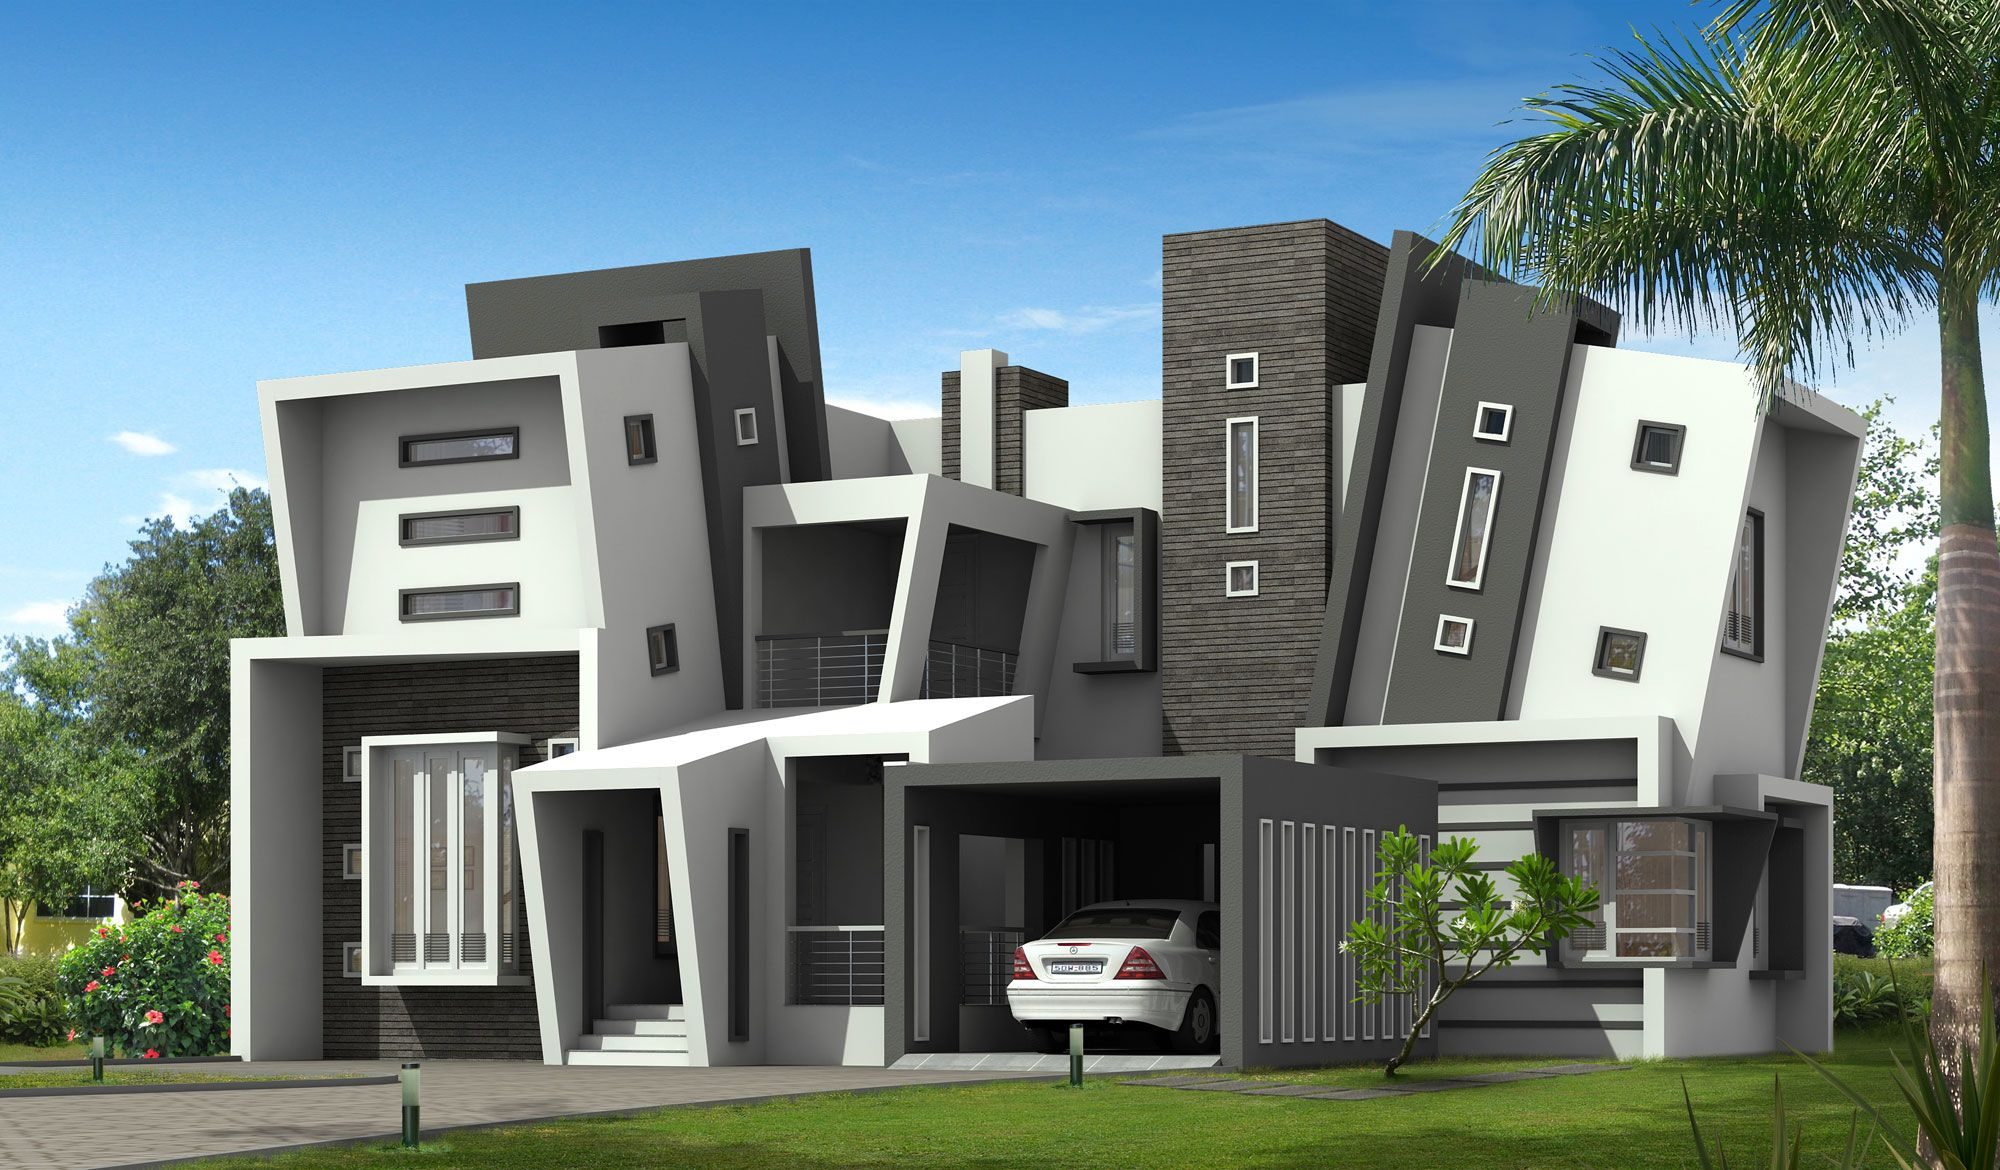 House Desing of unique trendy house kerala home design architecture plans